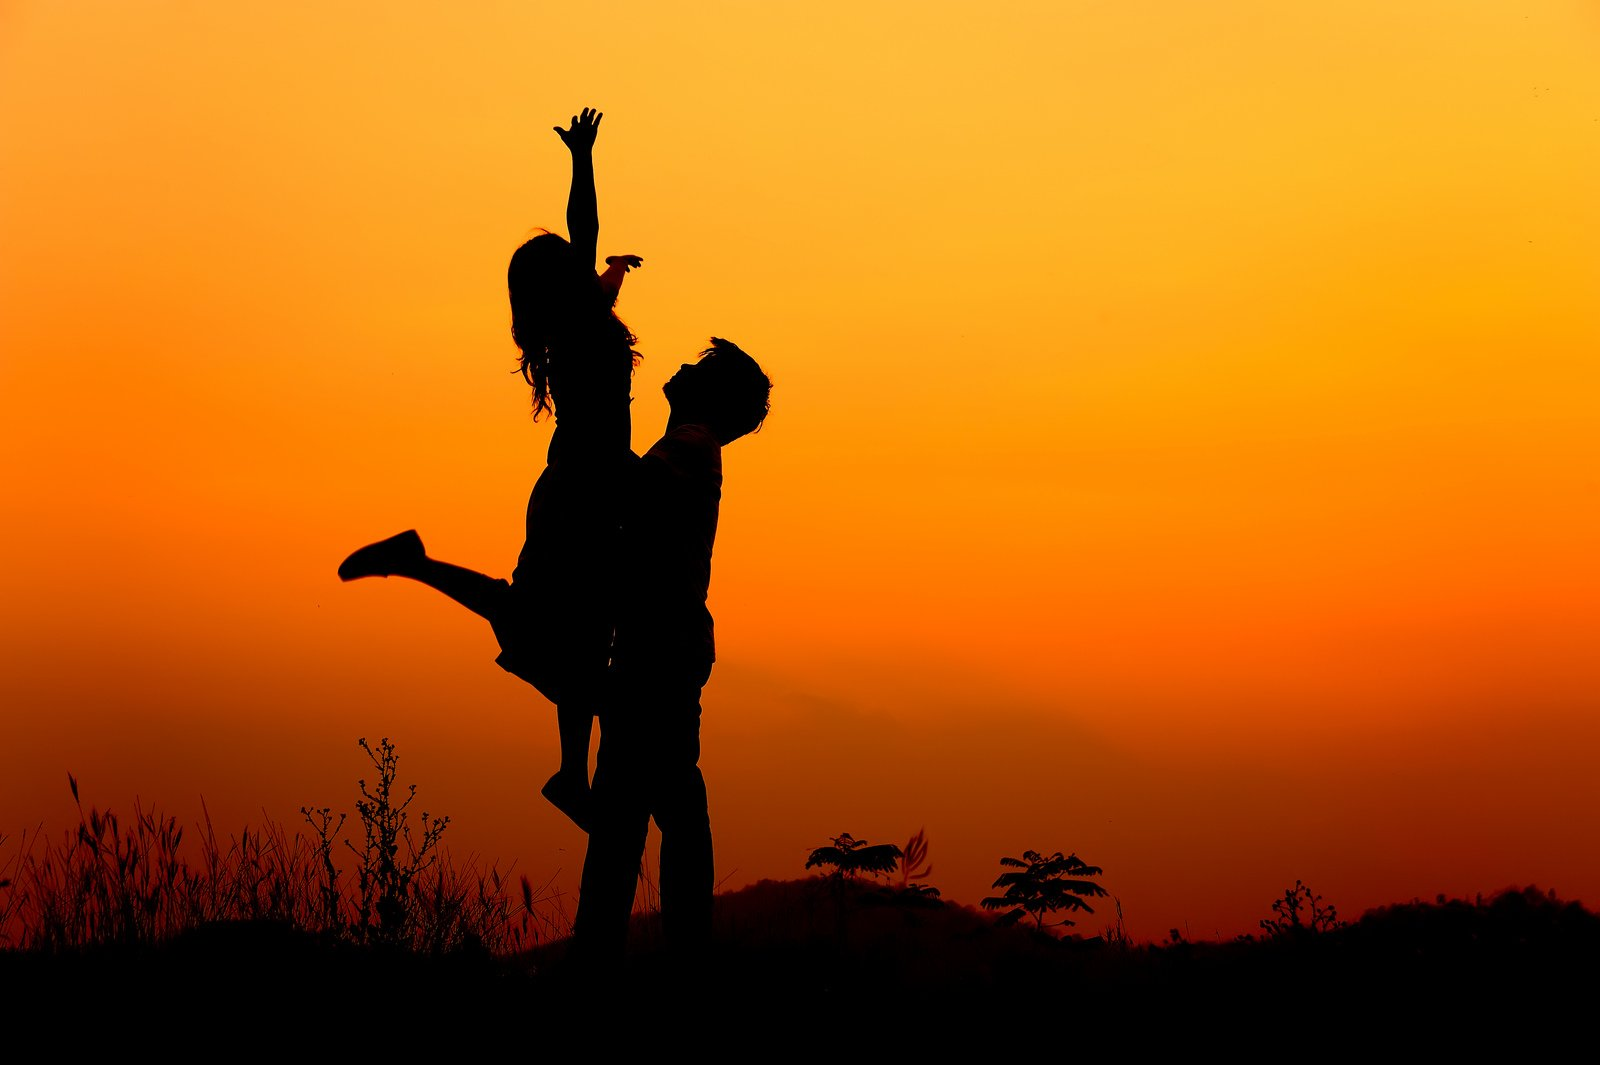 silhouette art7 Examples Of People Silhouette Photography